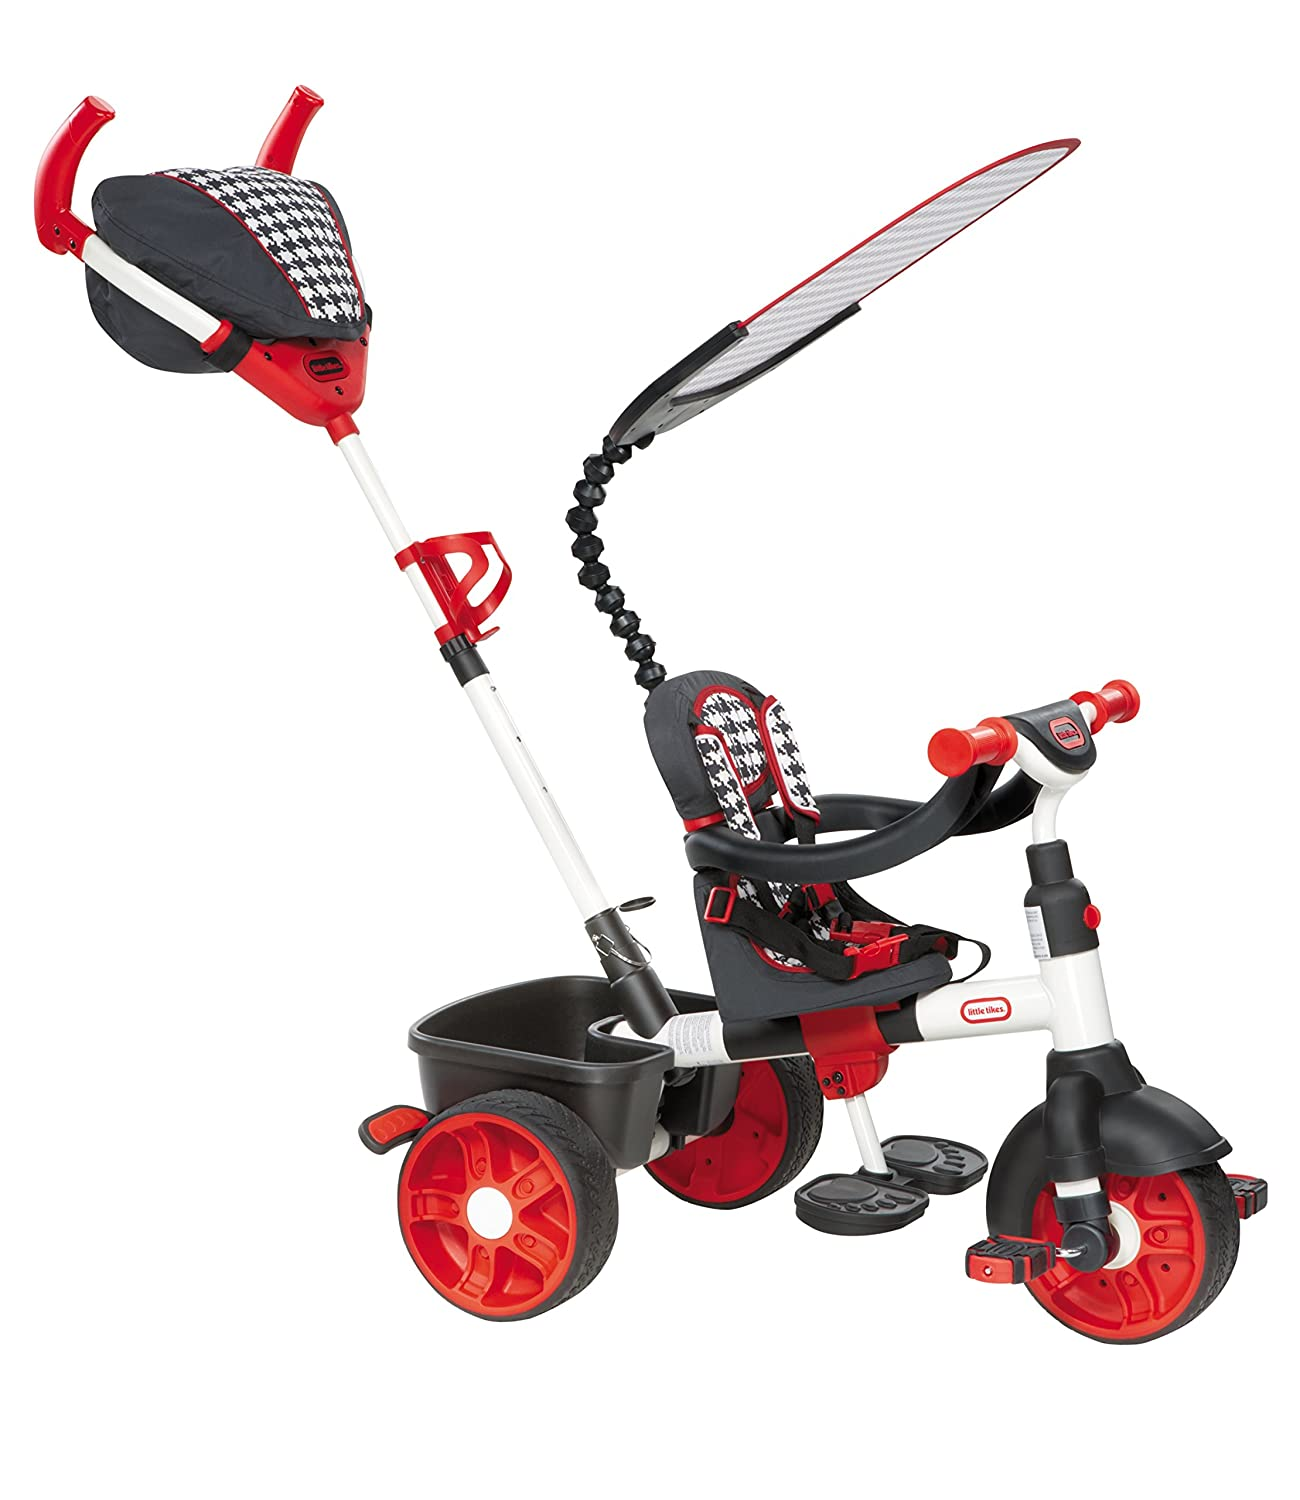 Little Tikes 634345E4 – 4-in-1 Sports Edition Trike, rot/weiß online bestellen